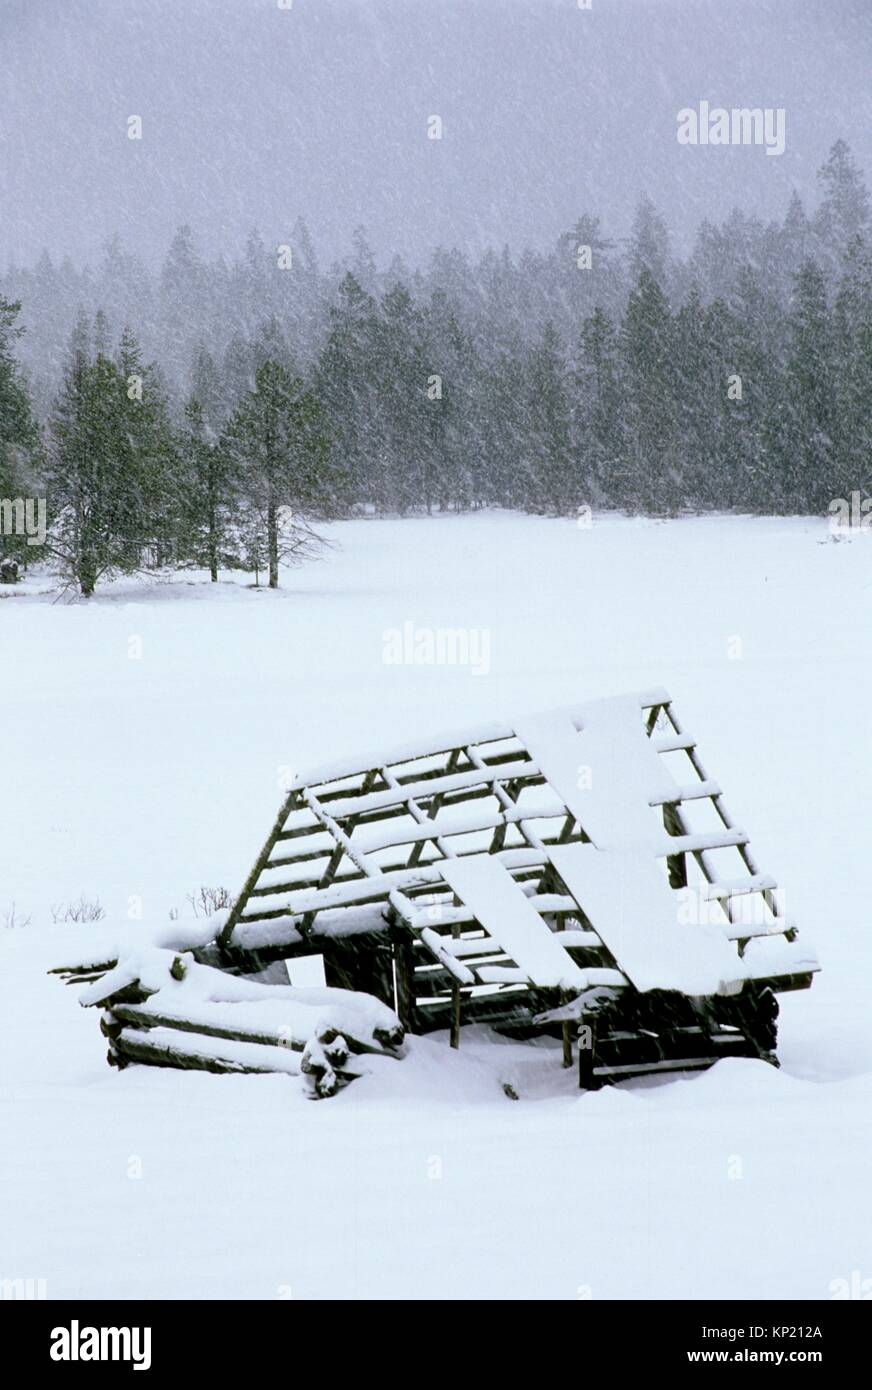 Deadwood Prairie shack in snow, Rogue River National Forest, Oregon. - Stock Image